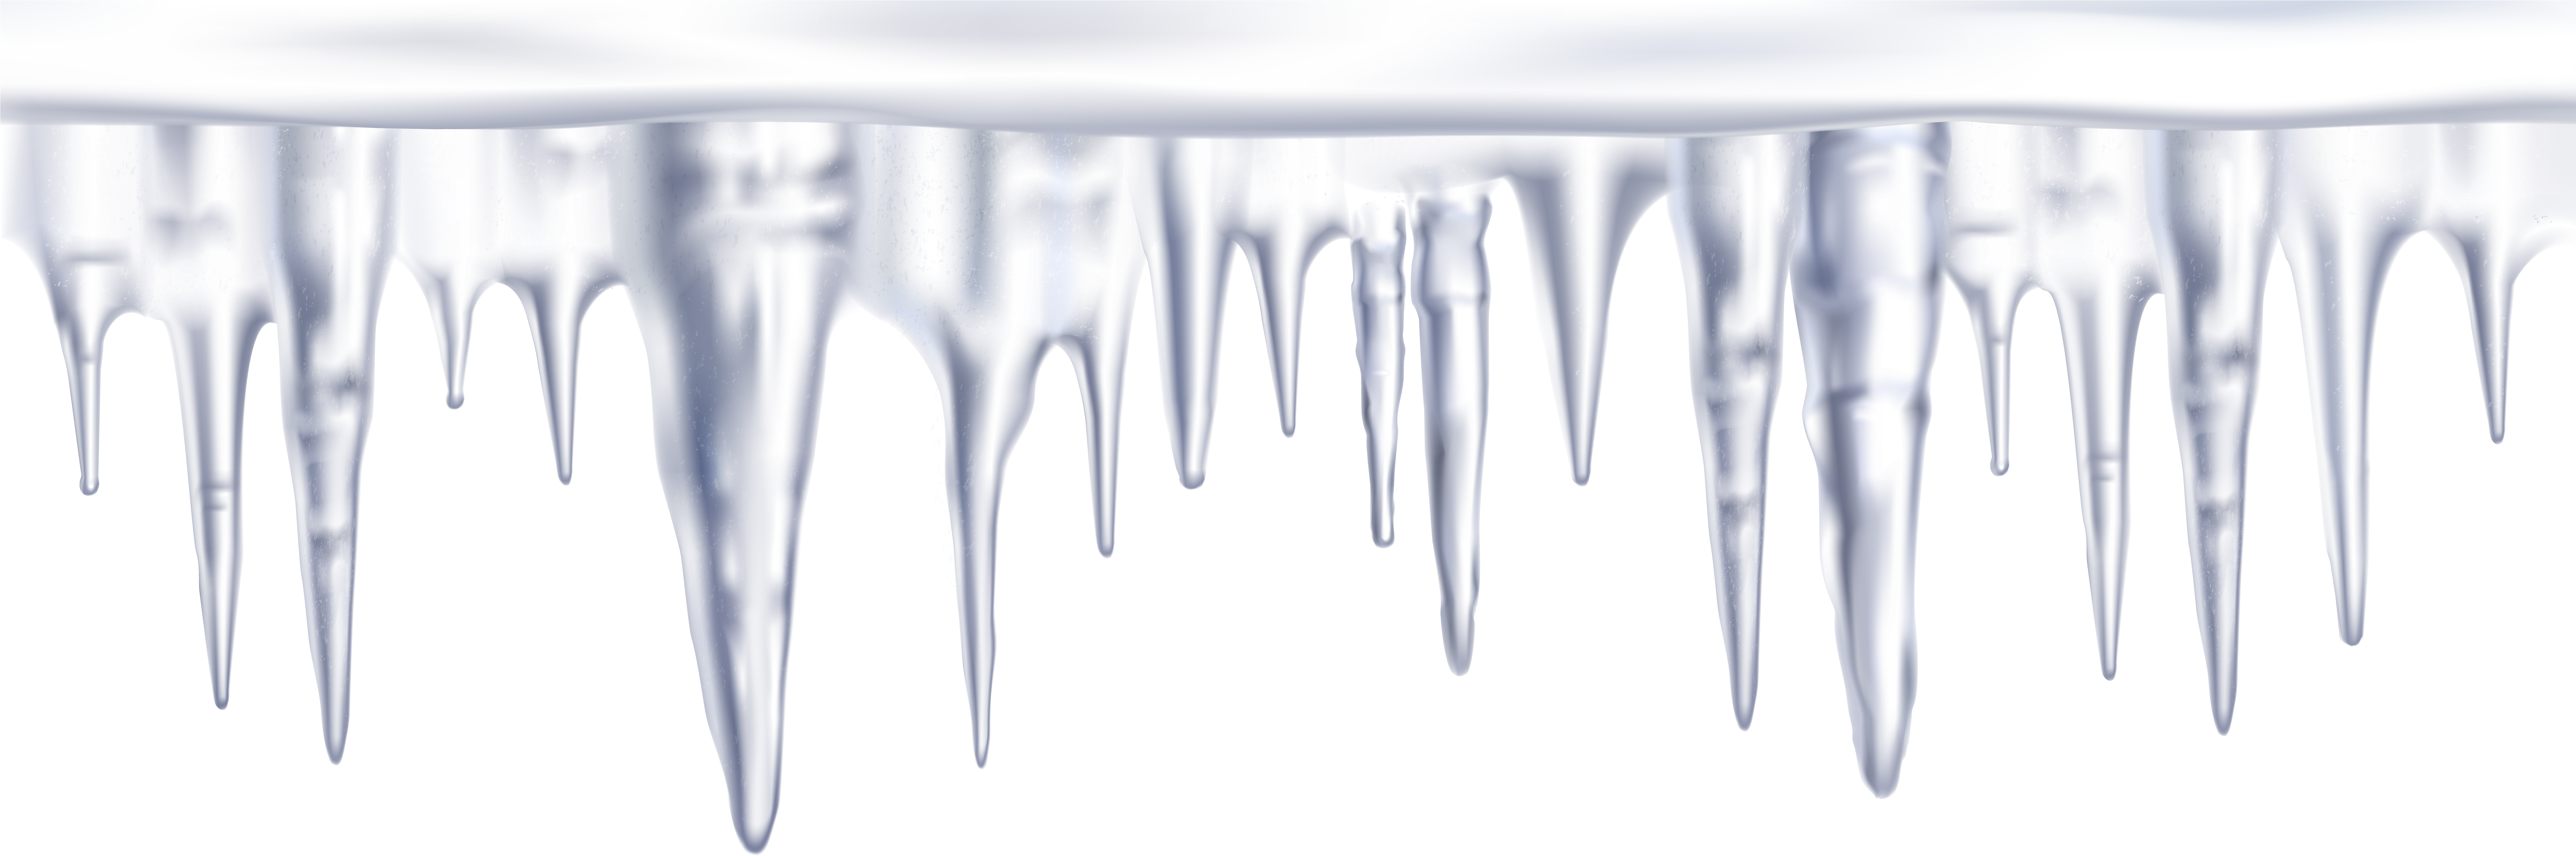 Christmas icecycle clipart picture image download HD Icicles Transparent Icicle Hq Image Free Png Clipart - Clip Art ... image download